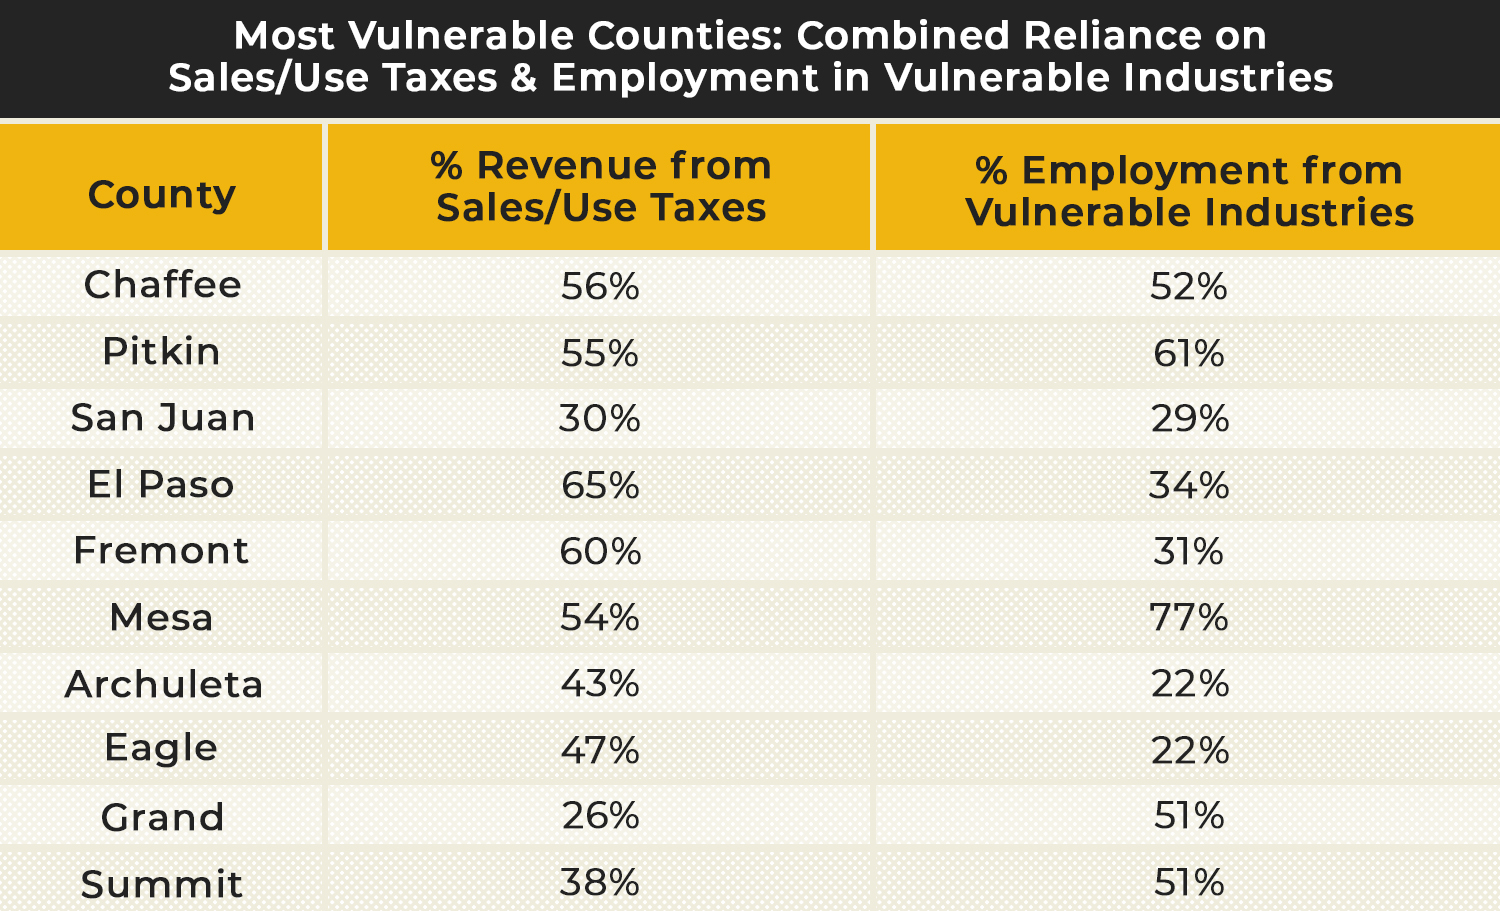 Most Vulnerable Counties Chart